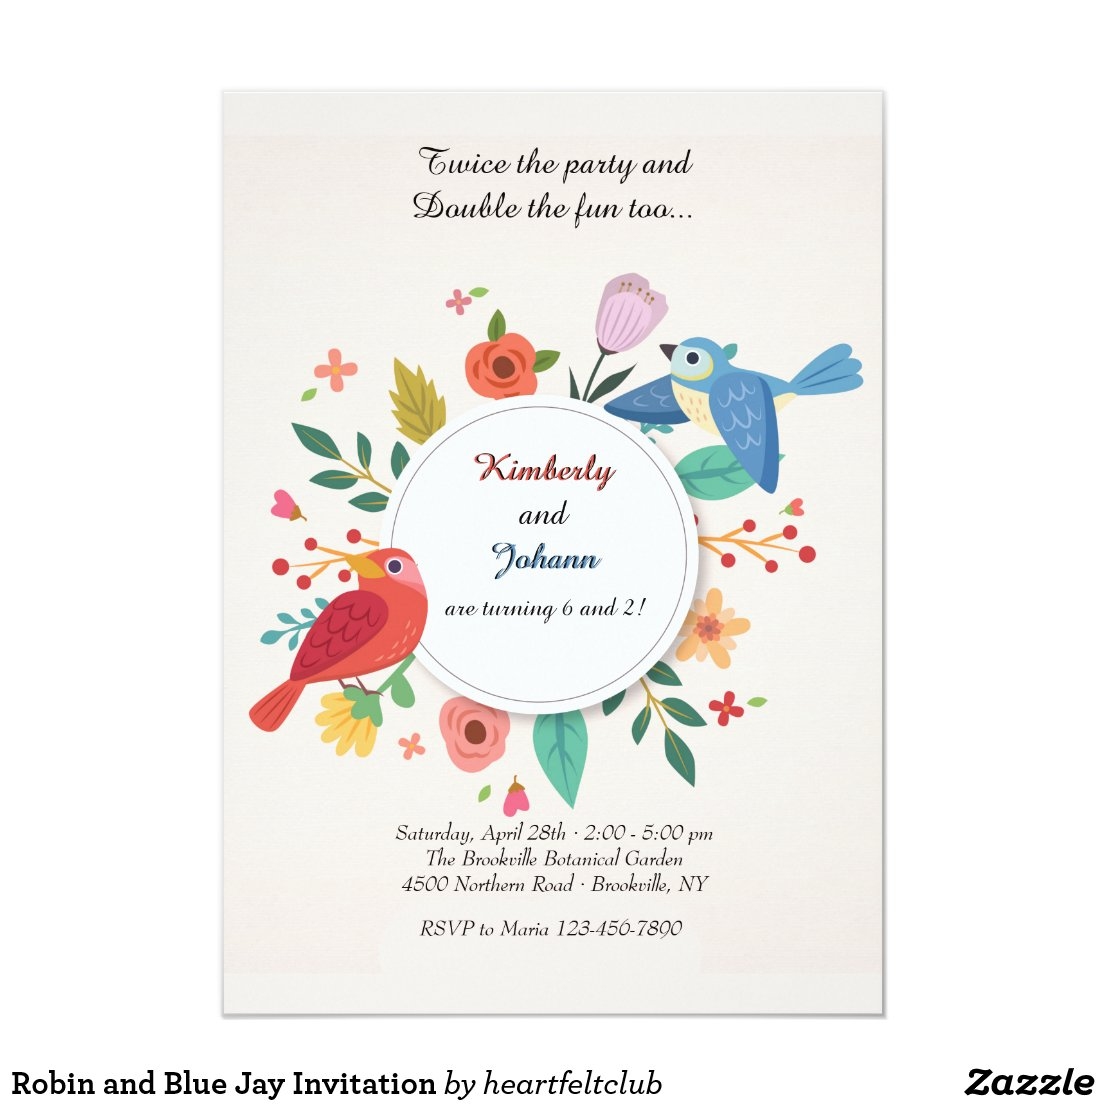 Robin and Blue Jay Invitation